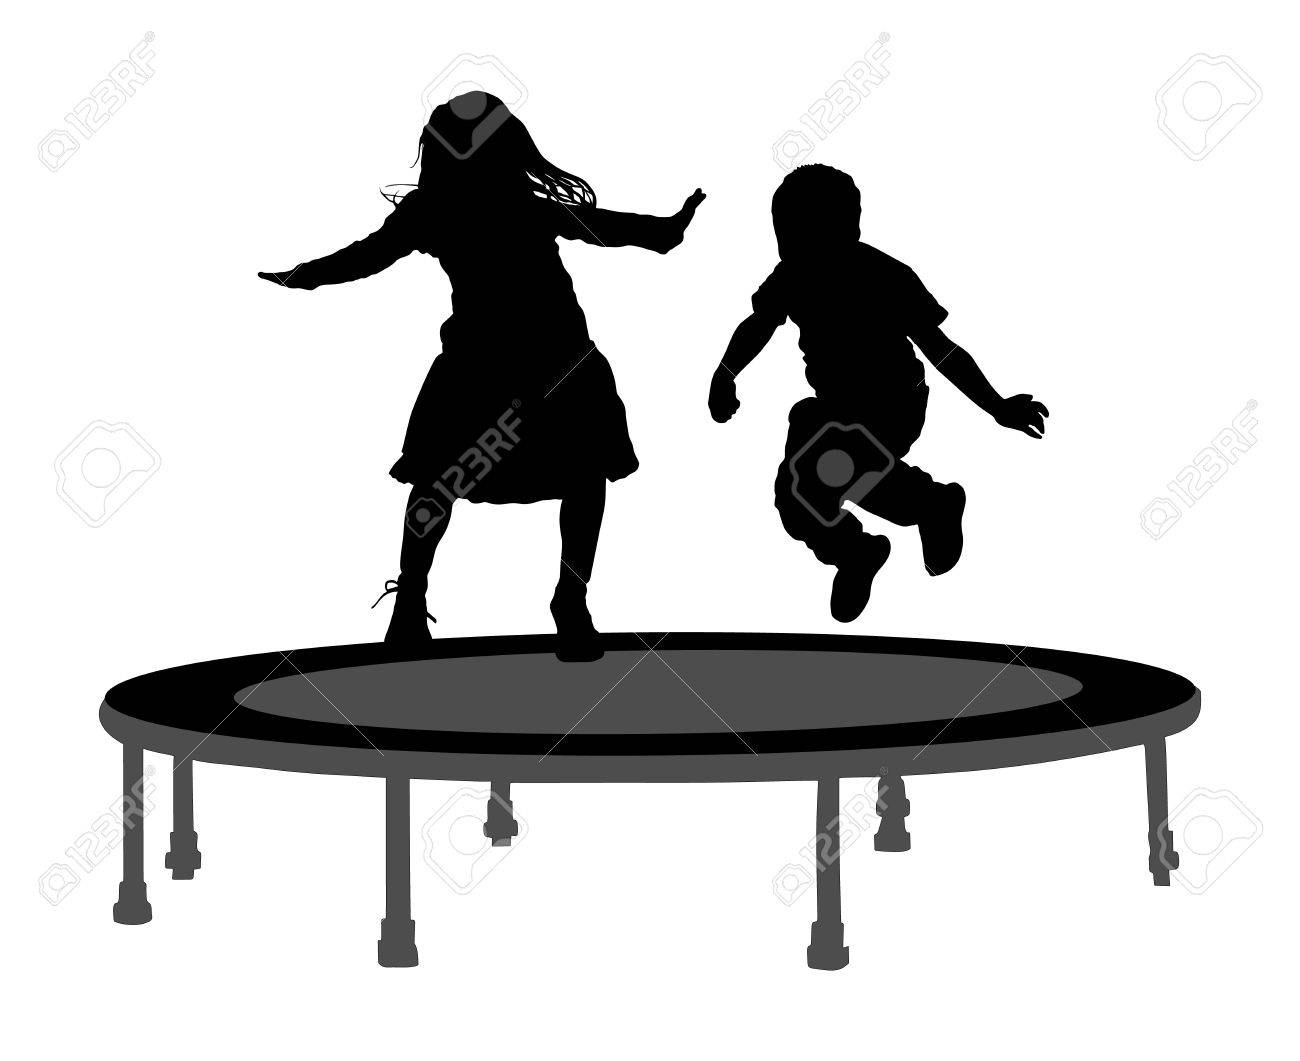 Children silhouettes jumping on garden trampoline vector illustration. Happy girl and boy jumping on trampoline. - 61491449